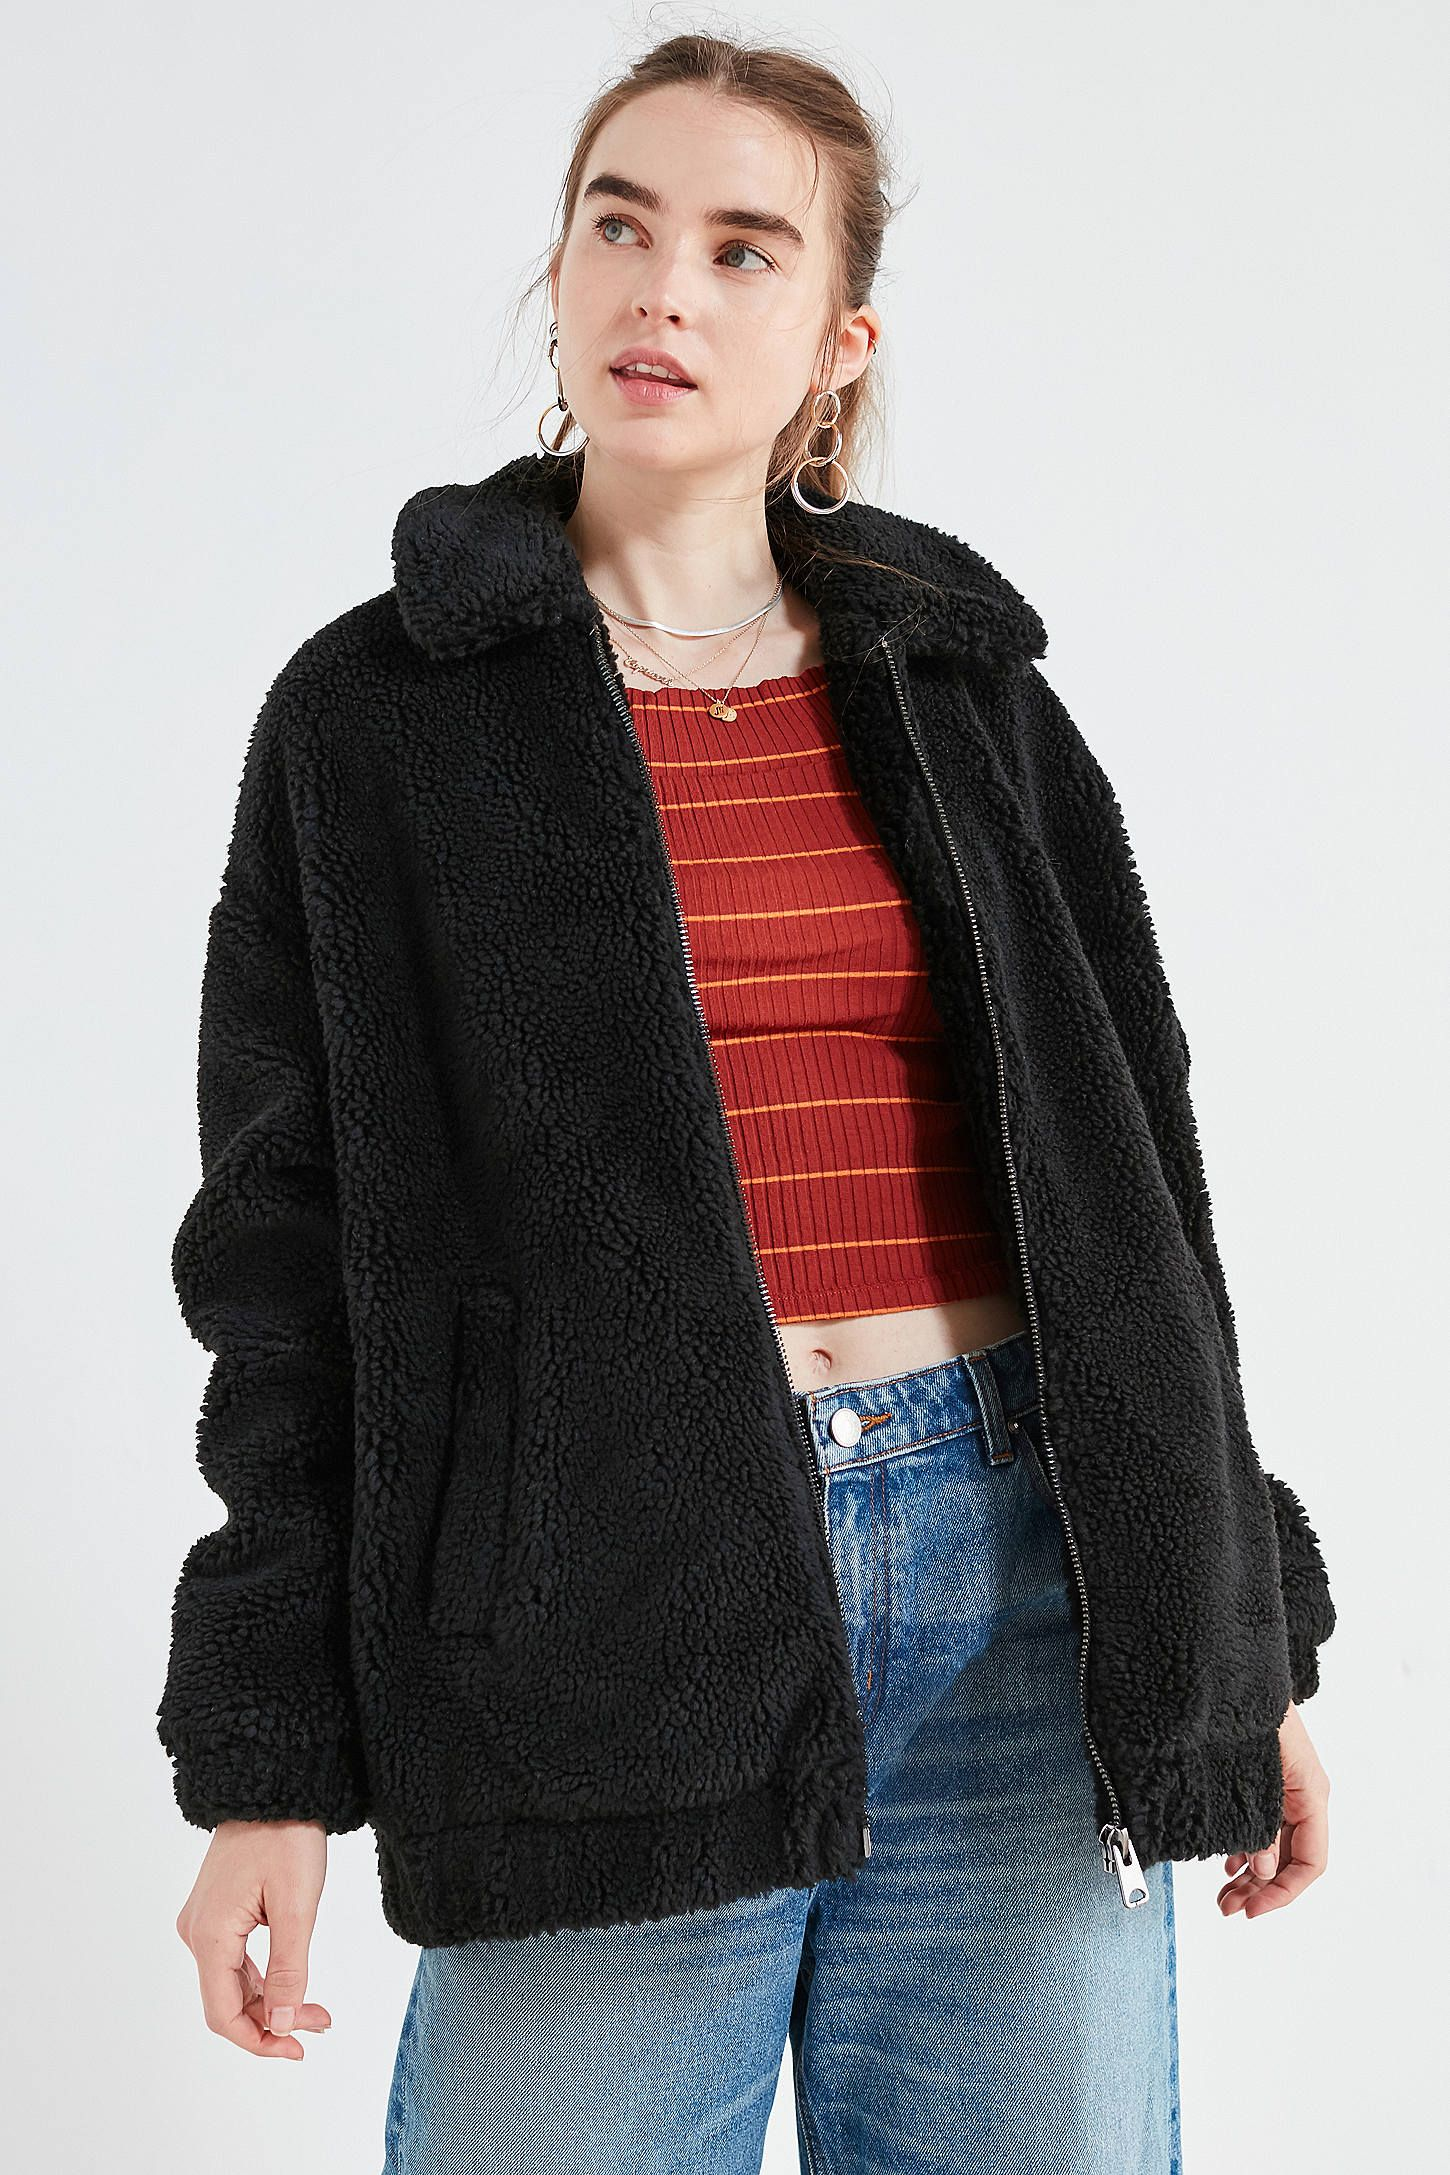 809abda8 Shop Light Before Dark Oversized Sherpa Zip-Up Jacket at Urban Outfitters  today. We carry all the latest styles, colors and brands for you to choose  from ...